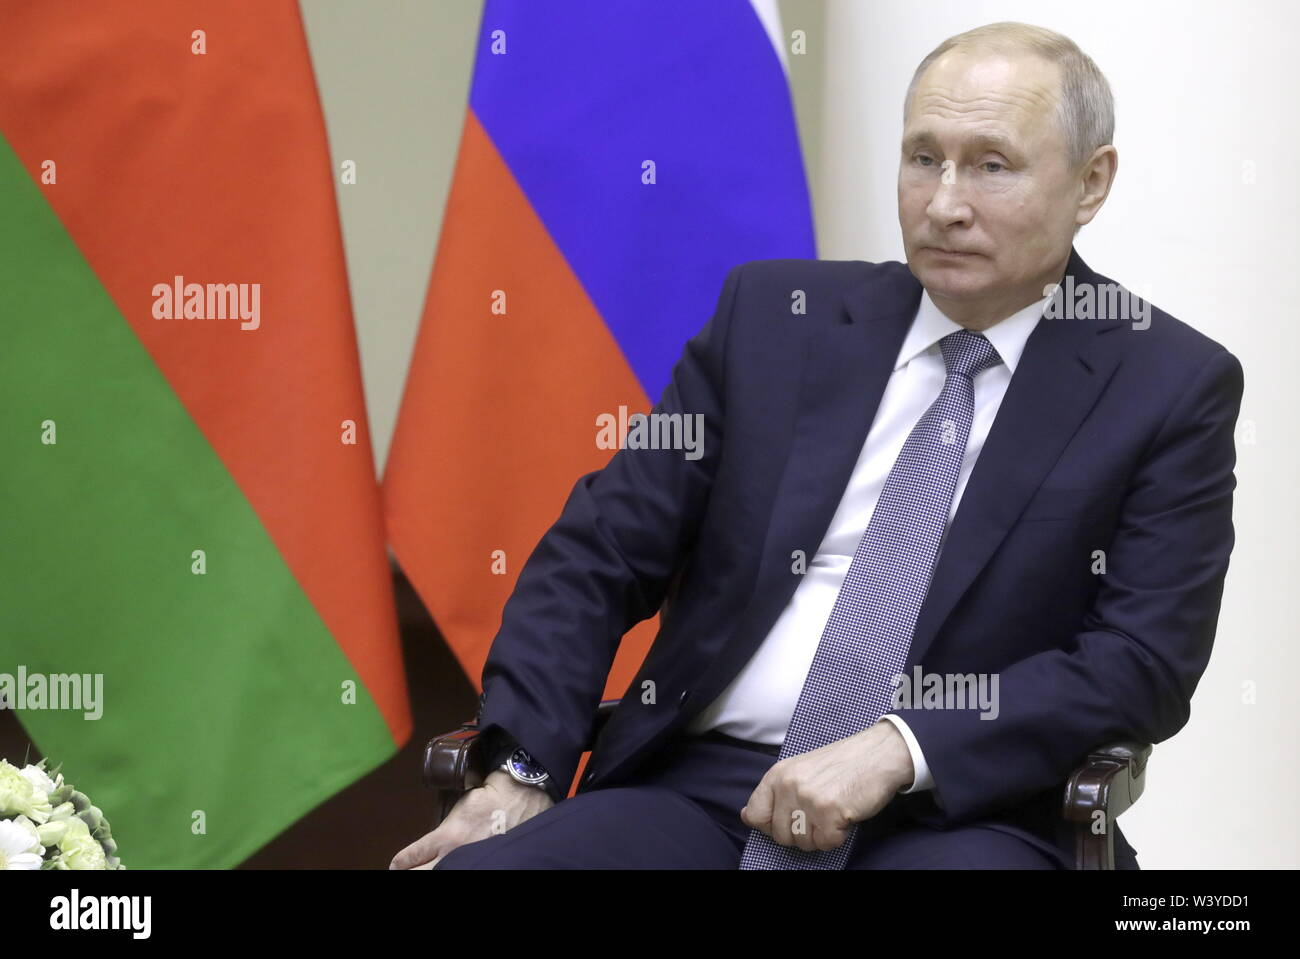 St Petersburg, Russia. 18th July, 2019. ST PETERSBURG, RUSSIA - JULY 18, 2019: Russia's President Vladimir Putin during a meeting with Belarus' President Alexander Lukashenko at the Tauride Palace. Mikhail Metzel/TASS Credit: ITAR-TASS News Agency/Alamy Live News - Stock Image